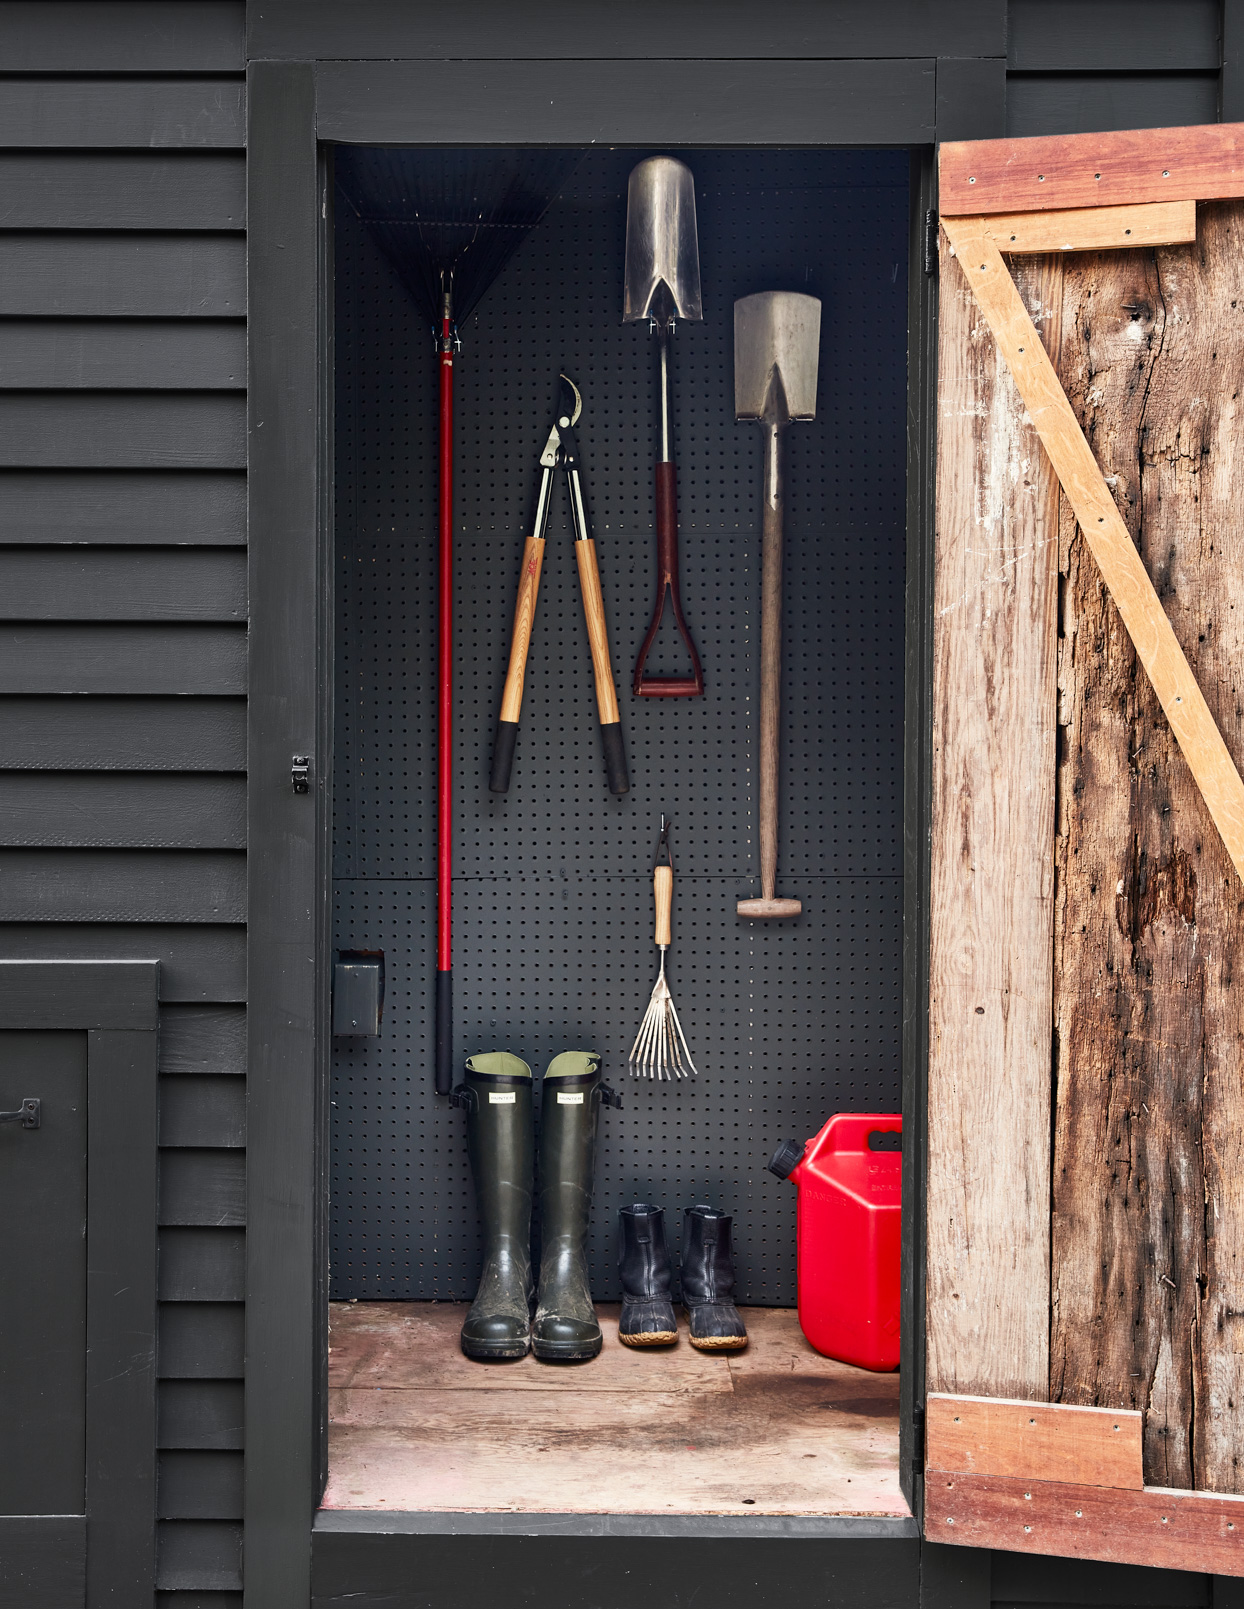 tools hanging and boots inside shed